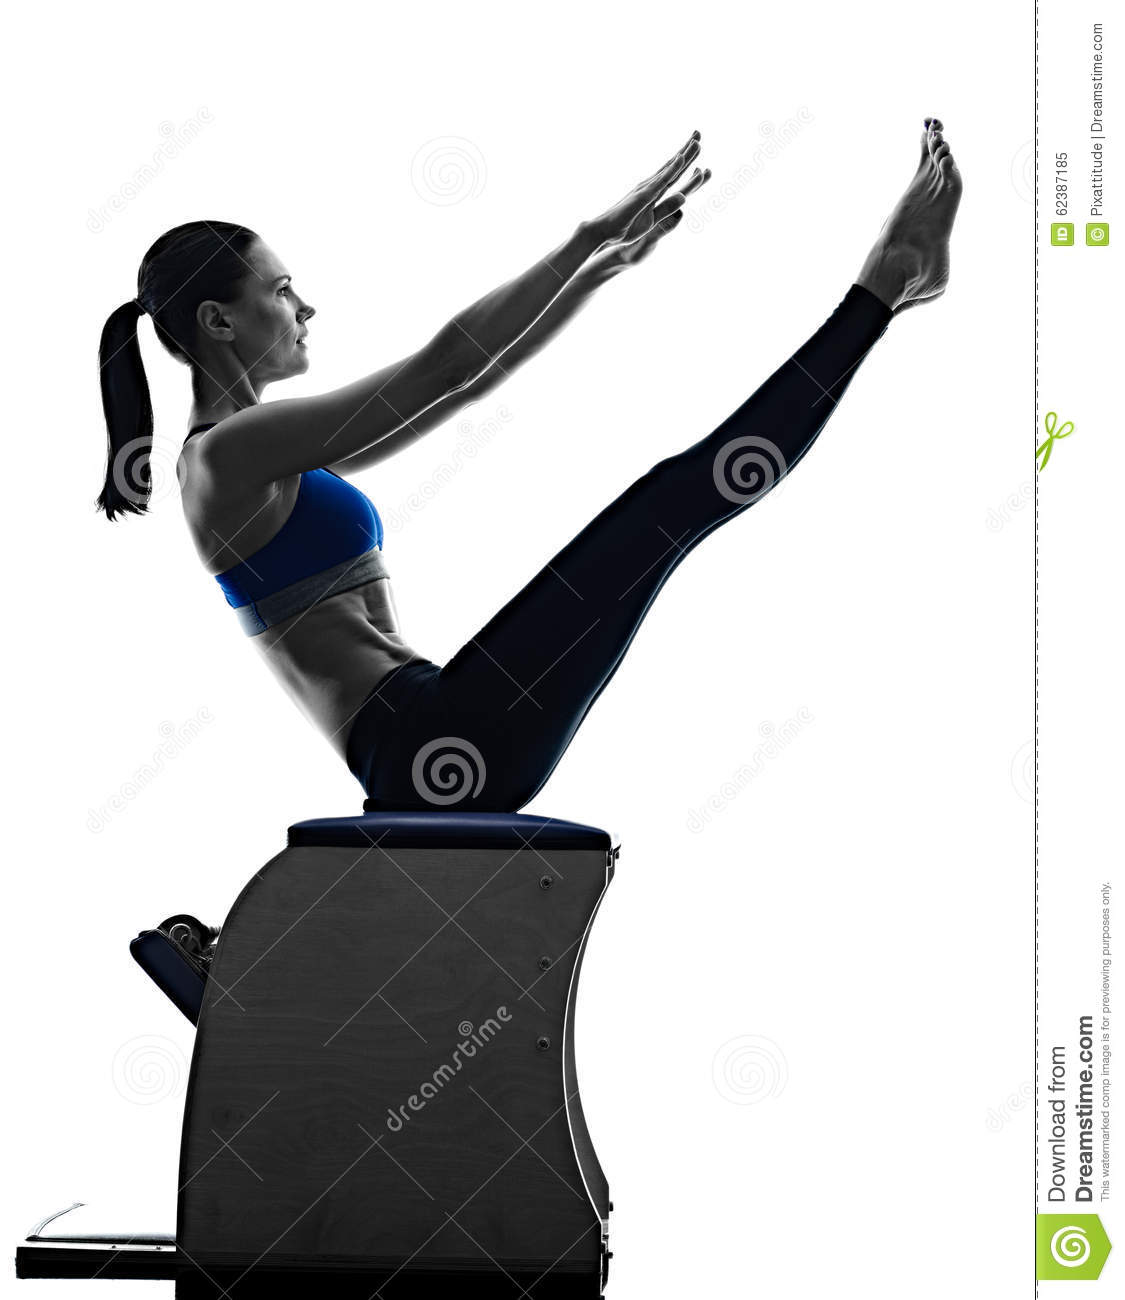 10 Moves On The Pilates Chair: Woman Pilates Chair Exercises Fitness Stock Photo